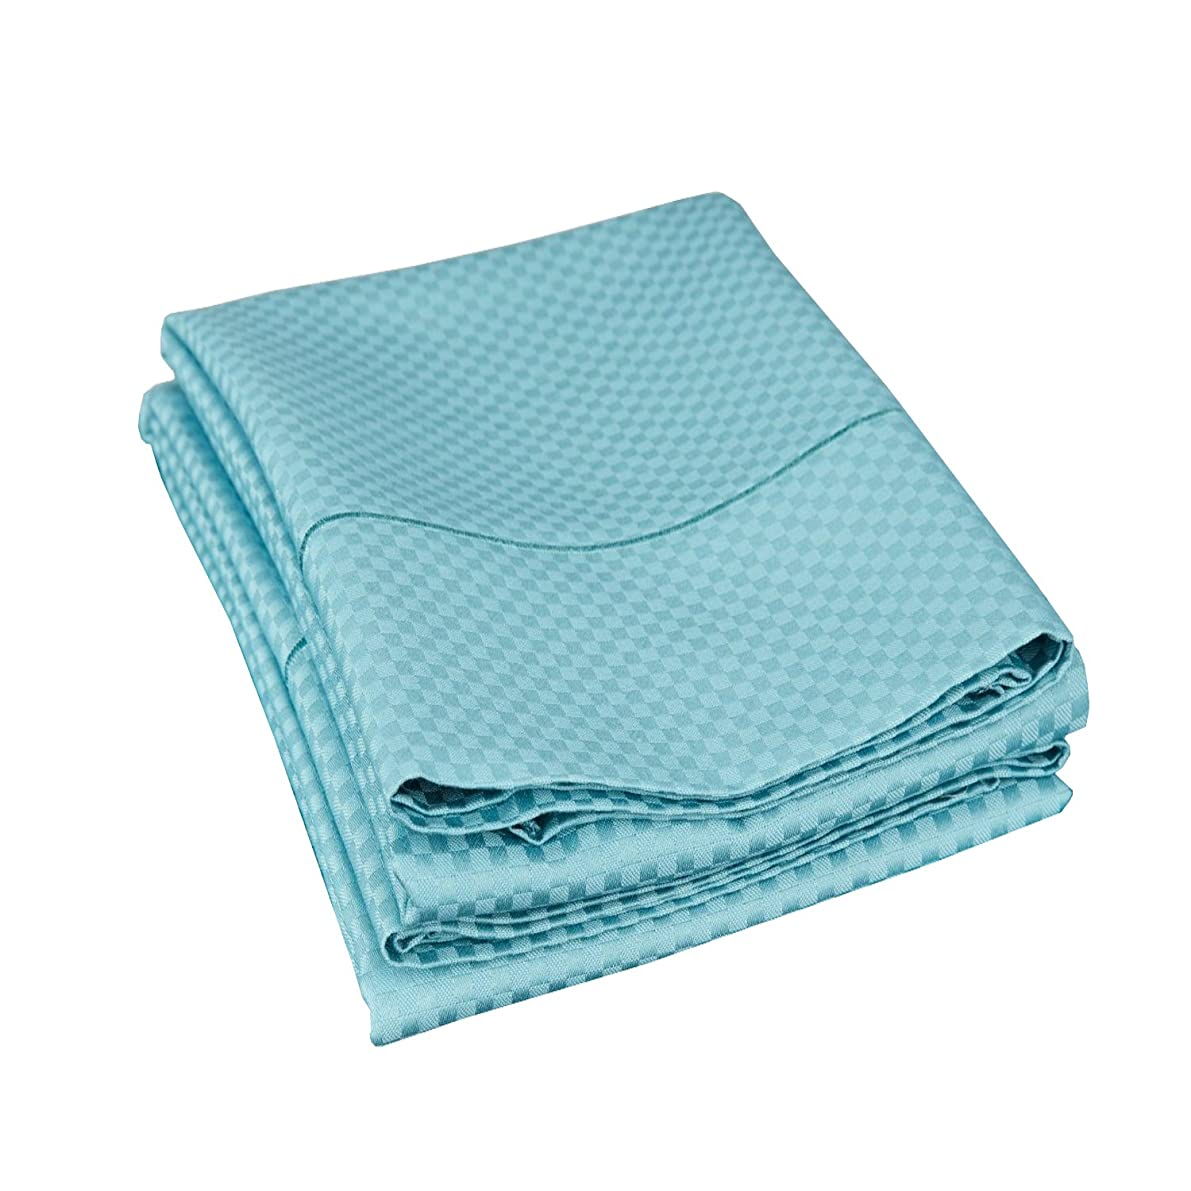 Cotton Blend 800 Thread Count Jacquard Weave Micro-checkers Wrinkle Resistant King Pillowcase Pair, Teal